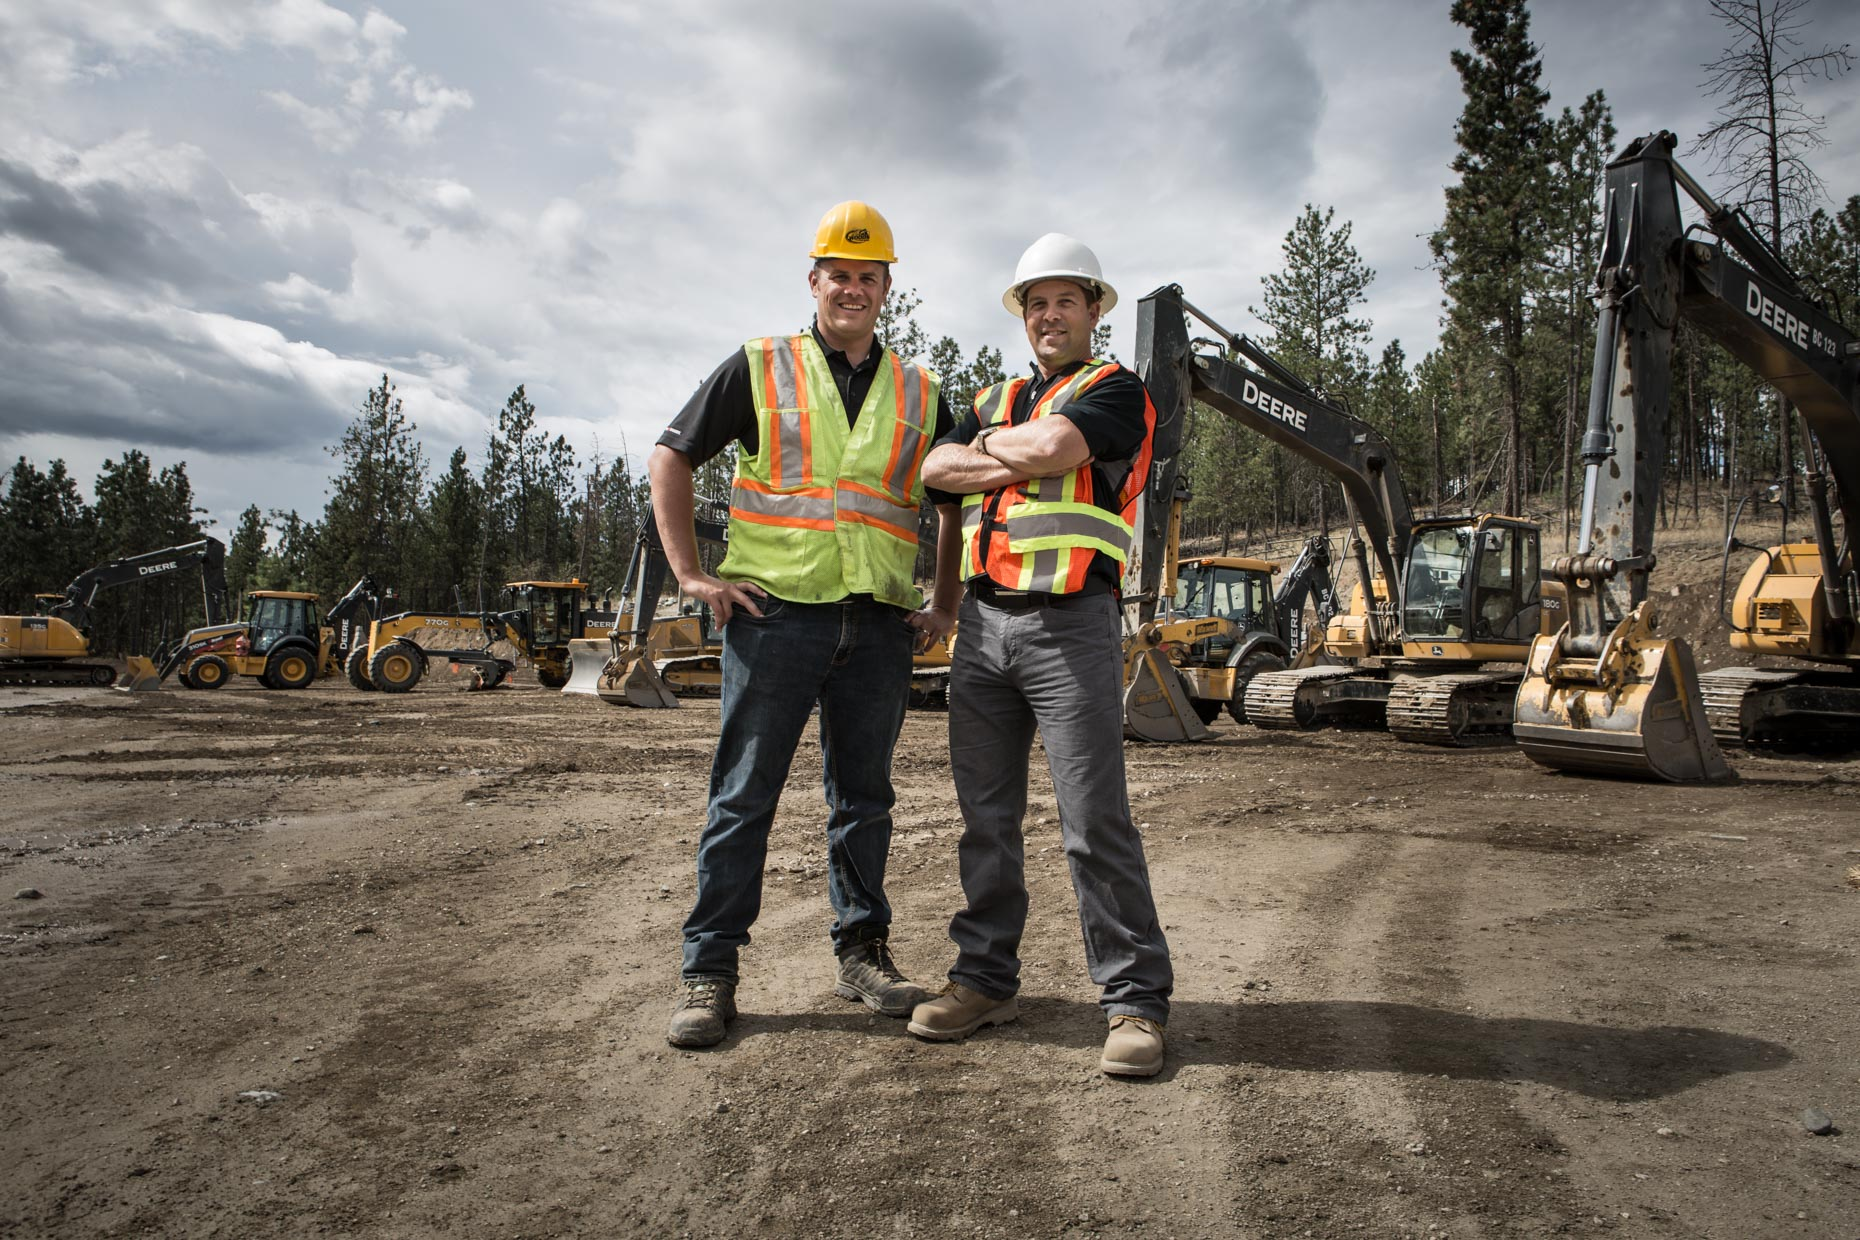 The owners of Interior Heavy Equipment Operator School, Daniel Collins & Mike Hansen, in Kelowna, British Columbia, Canada.